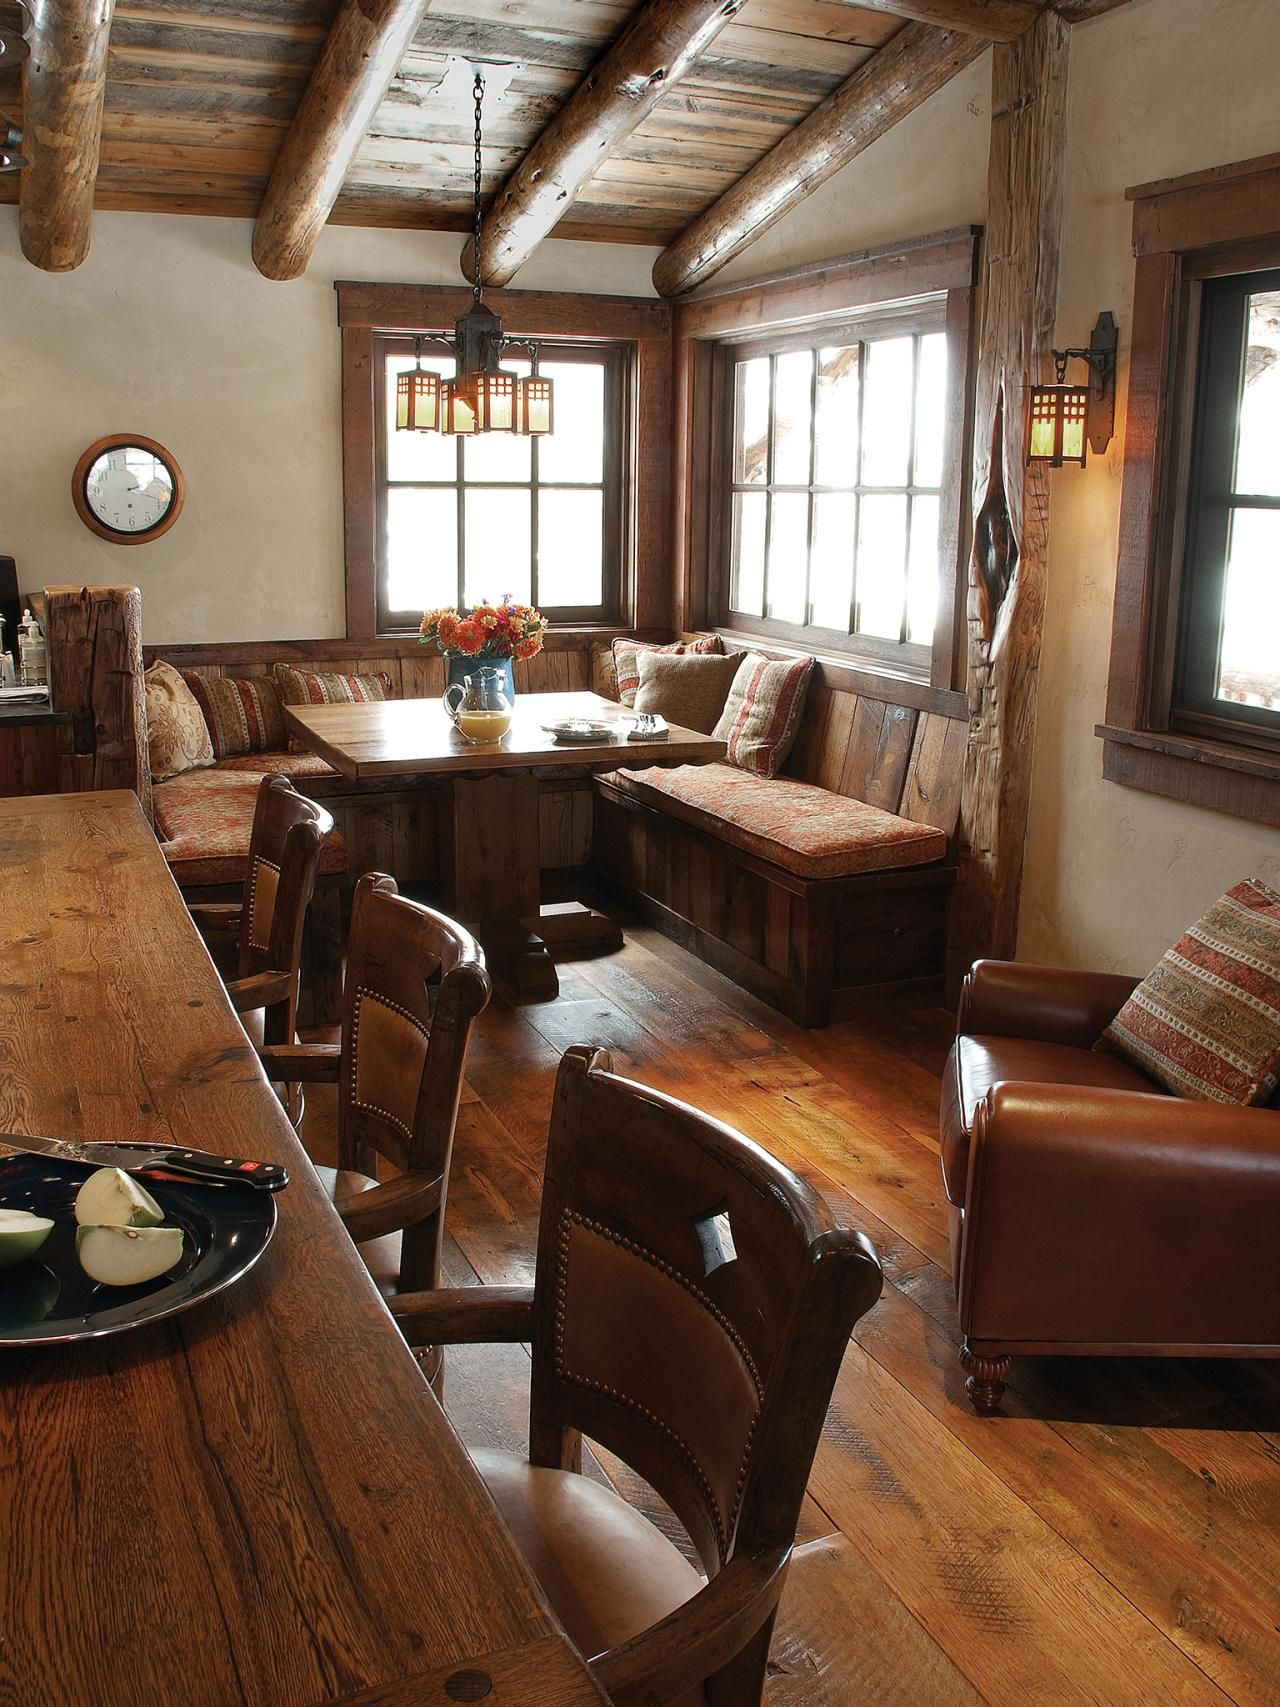 This Ski Cabin S Breakfast Nook With Built In Bench Seating Is The Perfect Spot For A Quick Meal Before Busy Day On Slopes